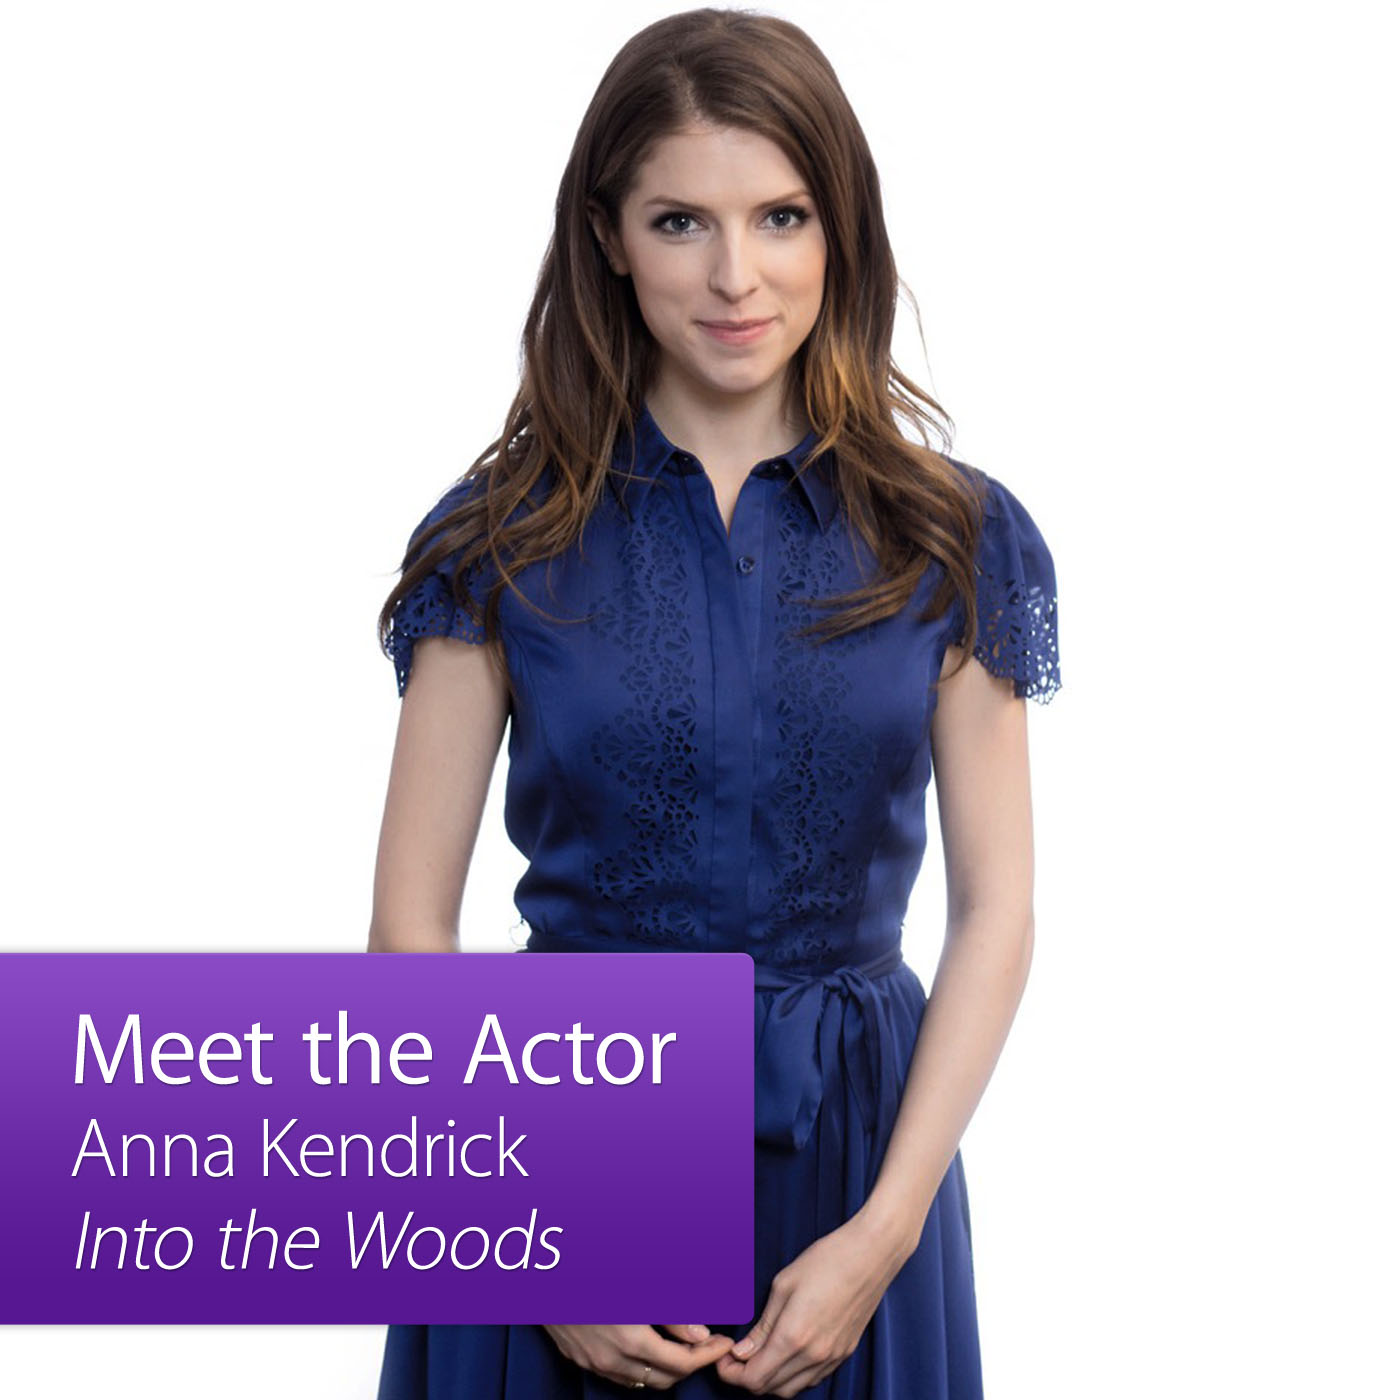 Anna Kendrick, Into the Woods: Meet the Actor